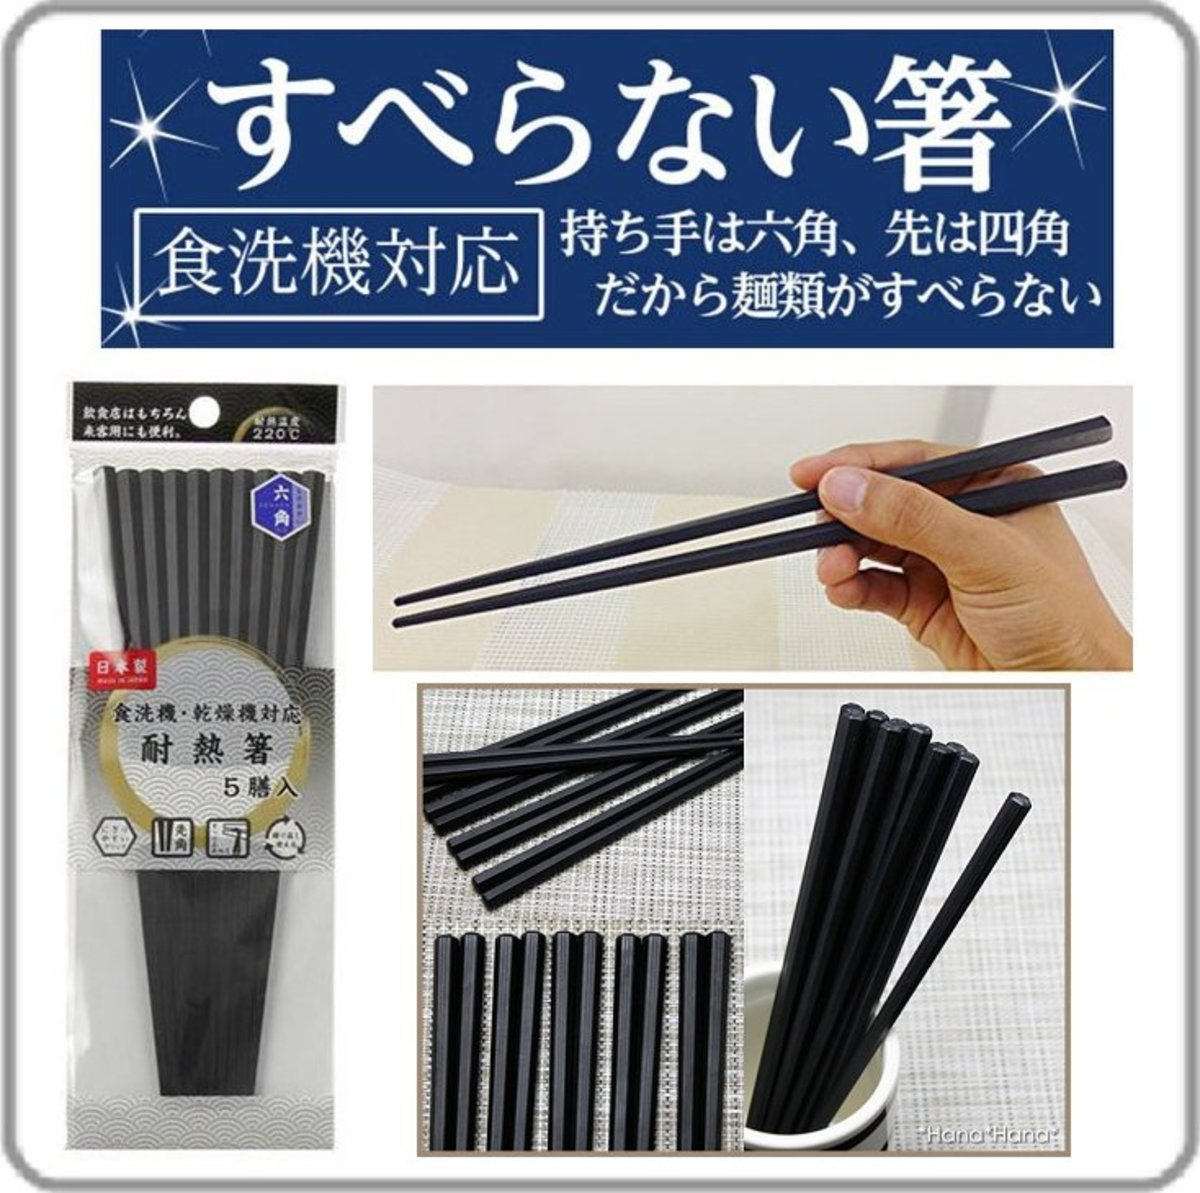 Made in Japan Rokaku Chopsticks (5 sets) - Black